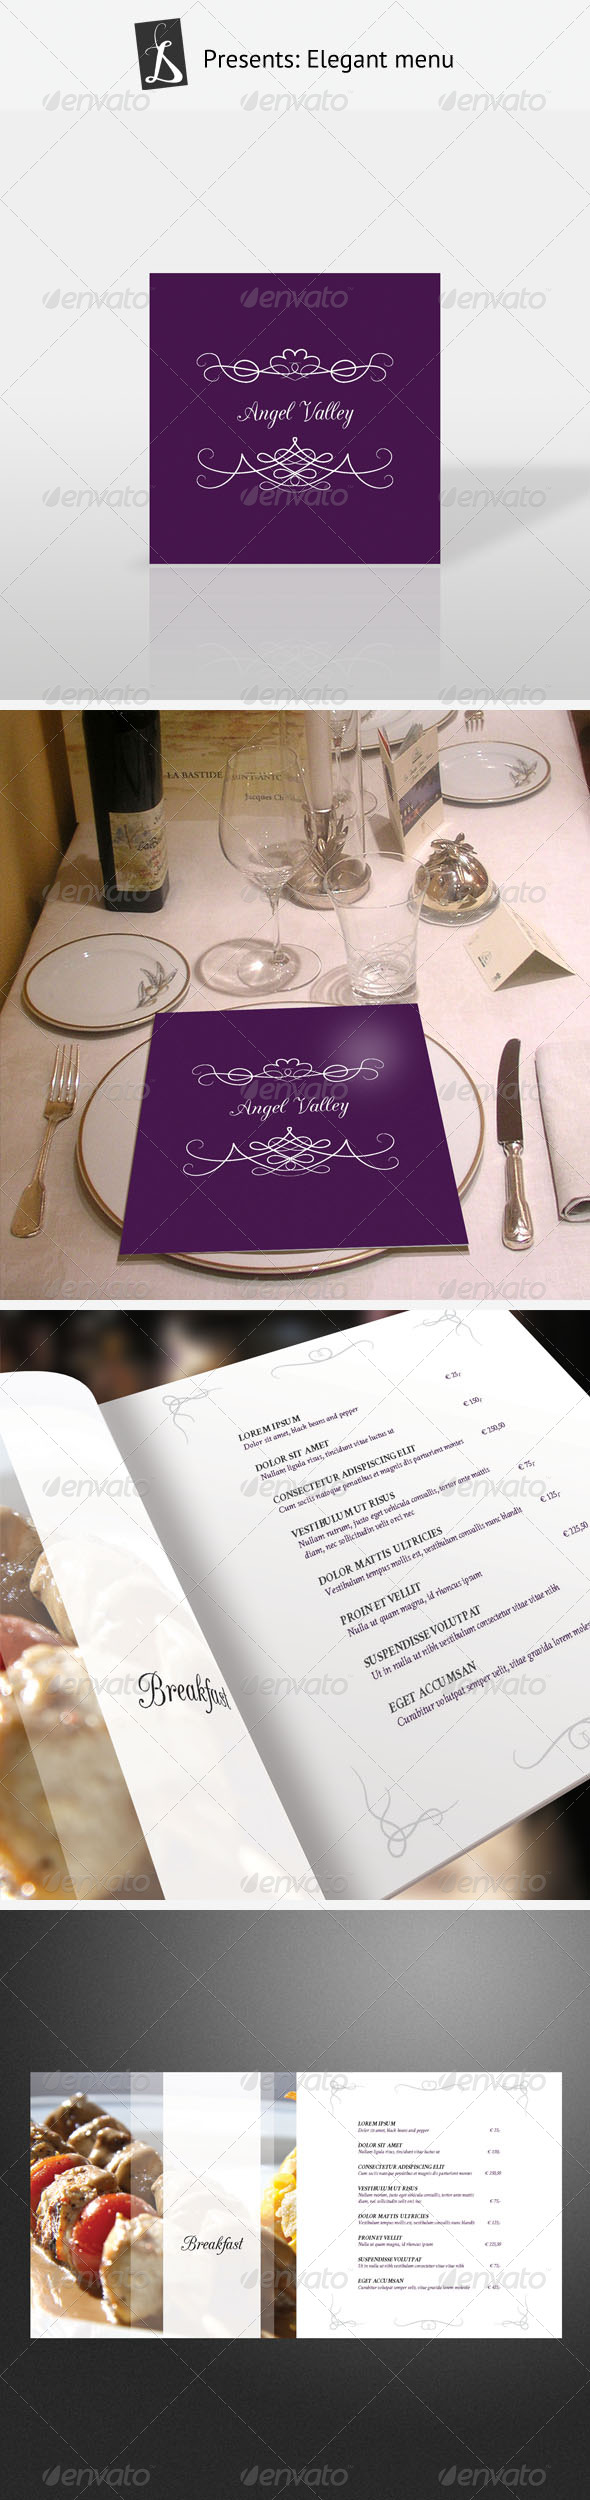 Elegant Menu - Food Menus Print Templates